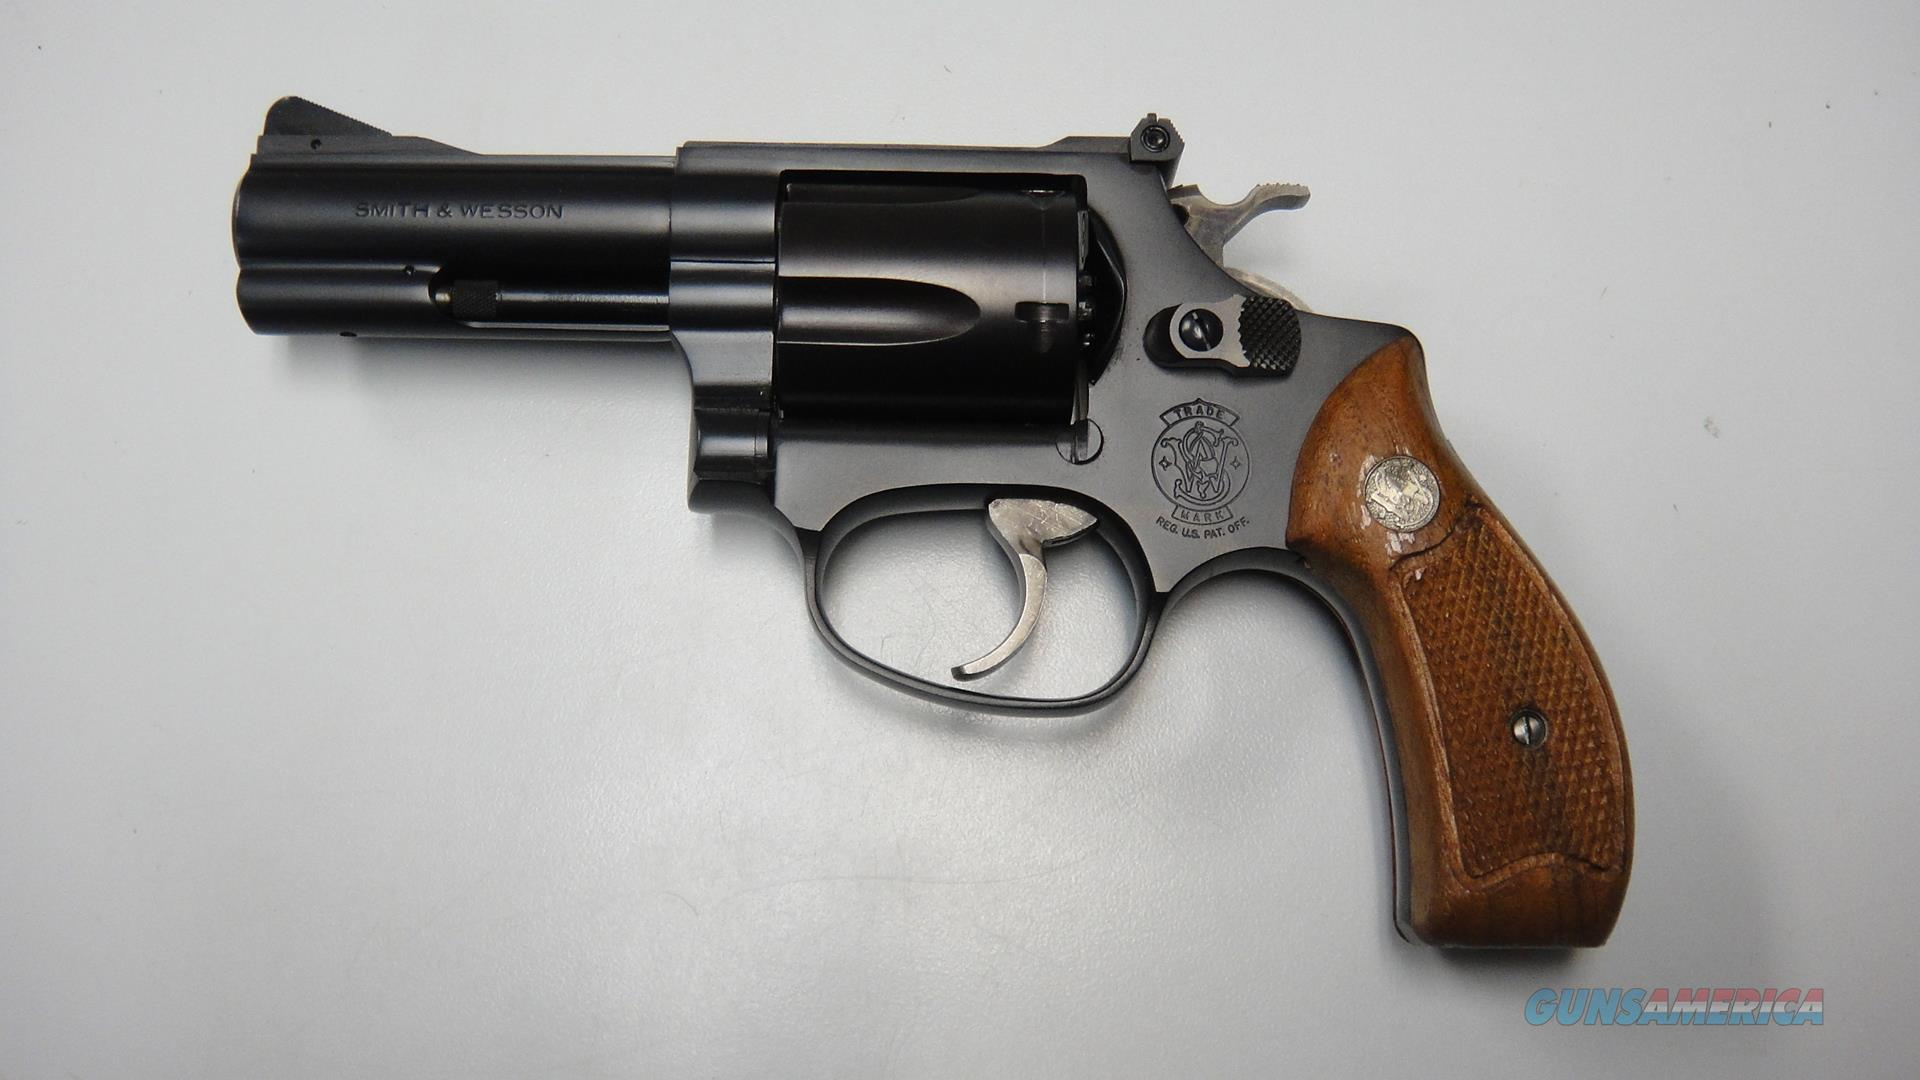 Smith & Wesson Model 36-6 (USED, 1 of 615 made) .38spl  Guns > Pistols > Smith & Wesson Revolvers > Small Frame ( J )